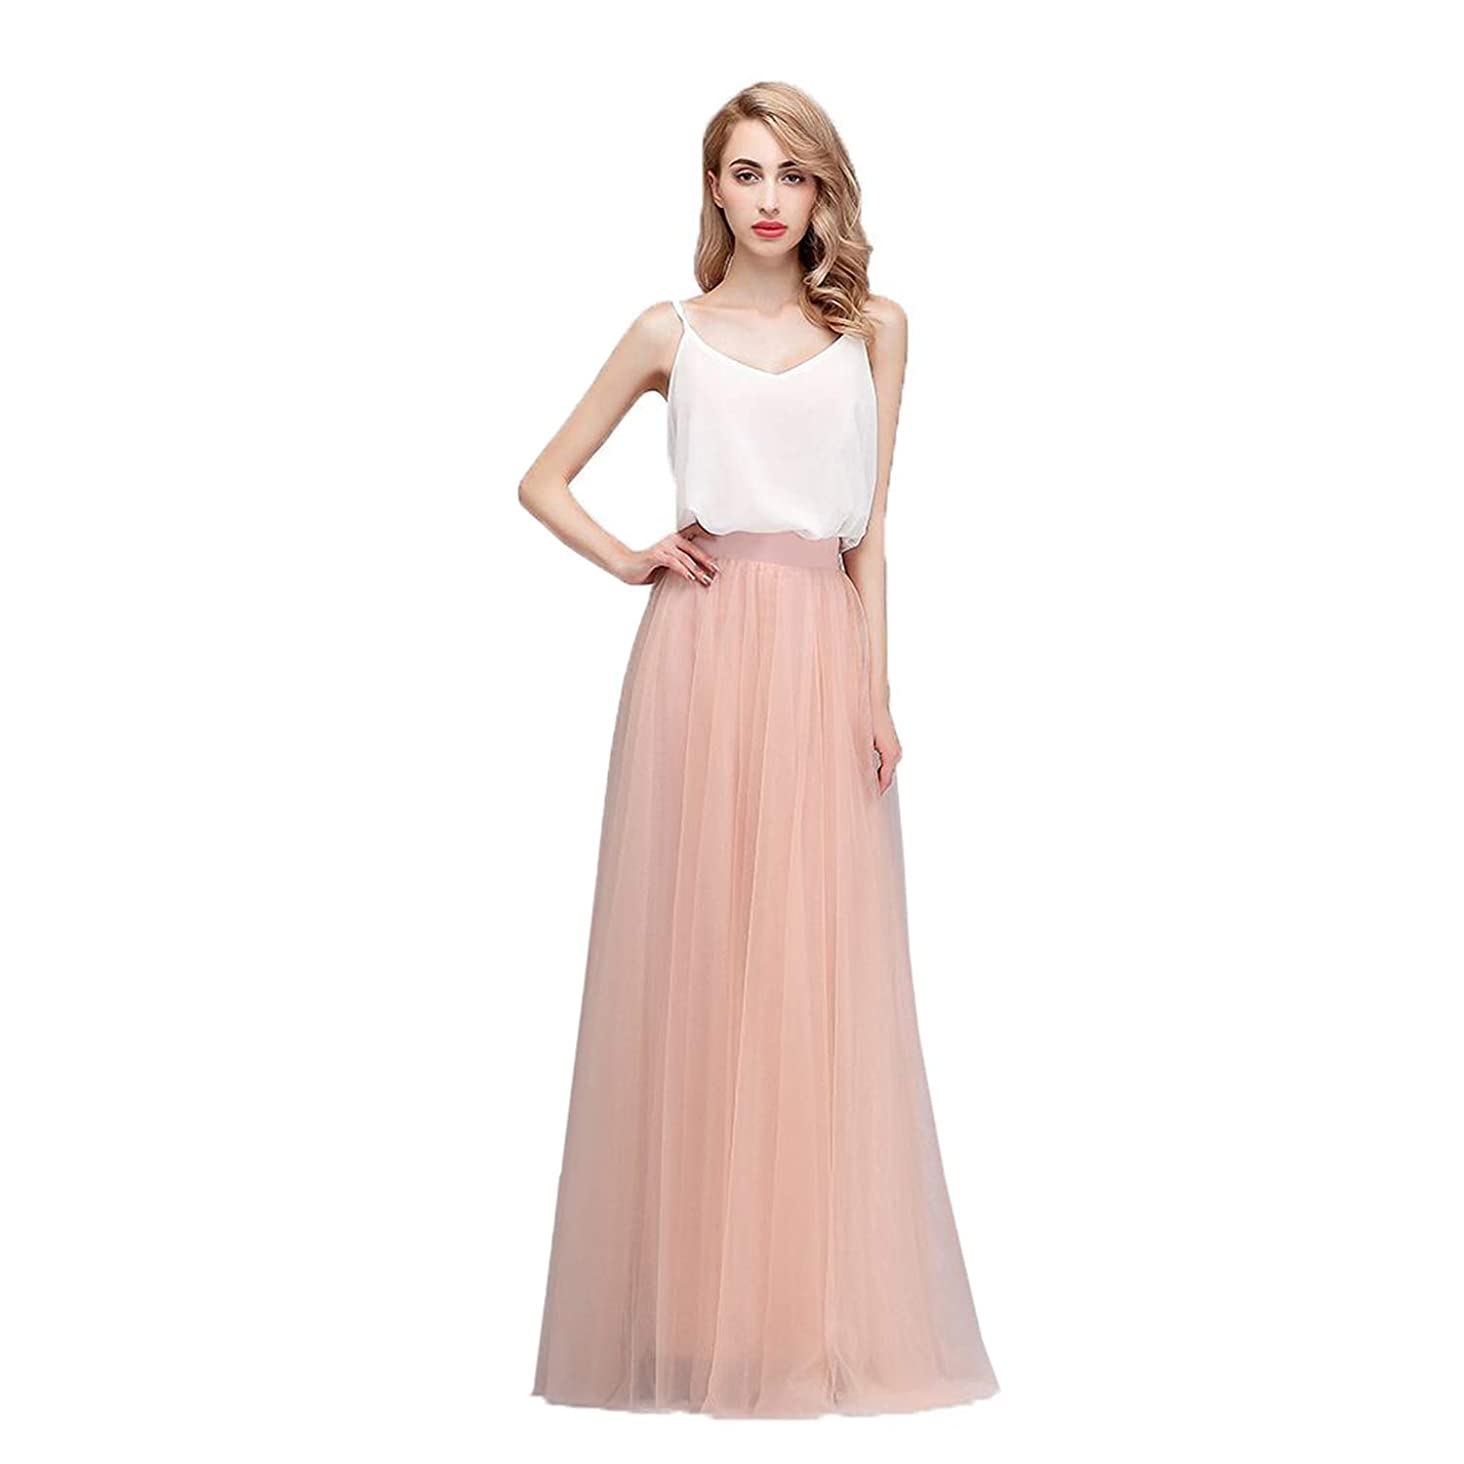 Honey Qiao Women's Maxi High Waist Skirts Blush Tulle Holiday Formal Skirt